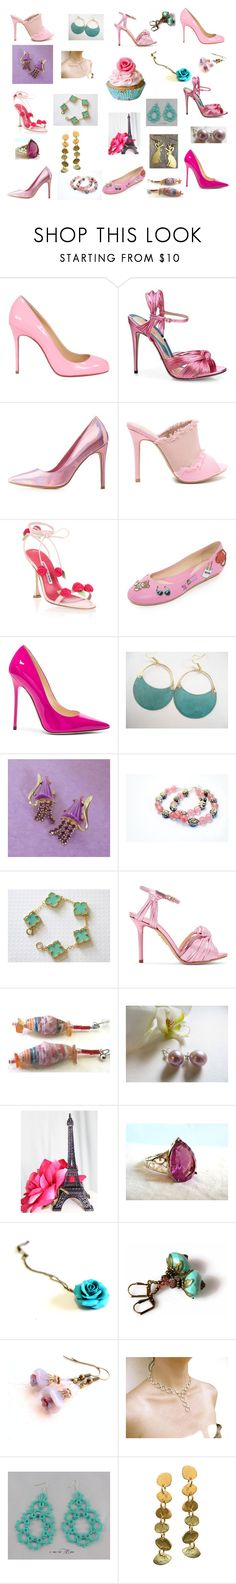 """Pink shoes deserve great jewelry"" by einder ❤ liked on Polyvore featuring Christian Louboutin, Gucci, Charlotte Russe, Manolo Blahnik, Moschino, Jimmy Choo, Charlotte Olympia and Cadeau"